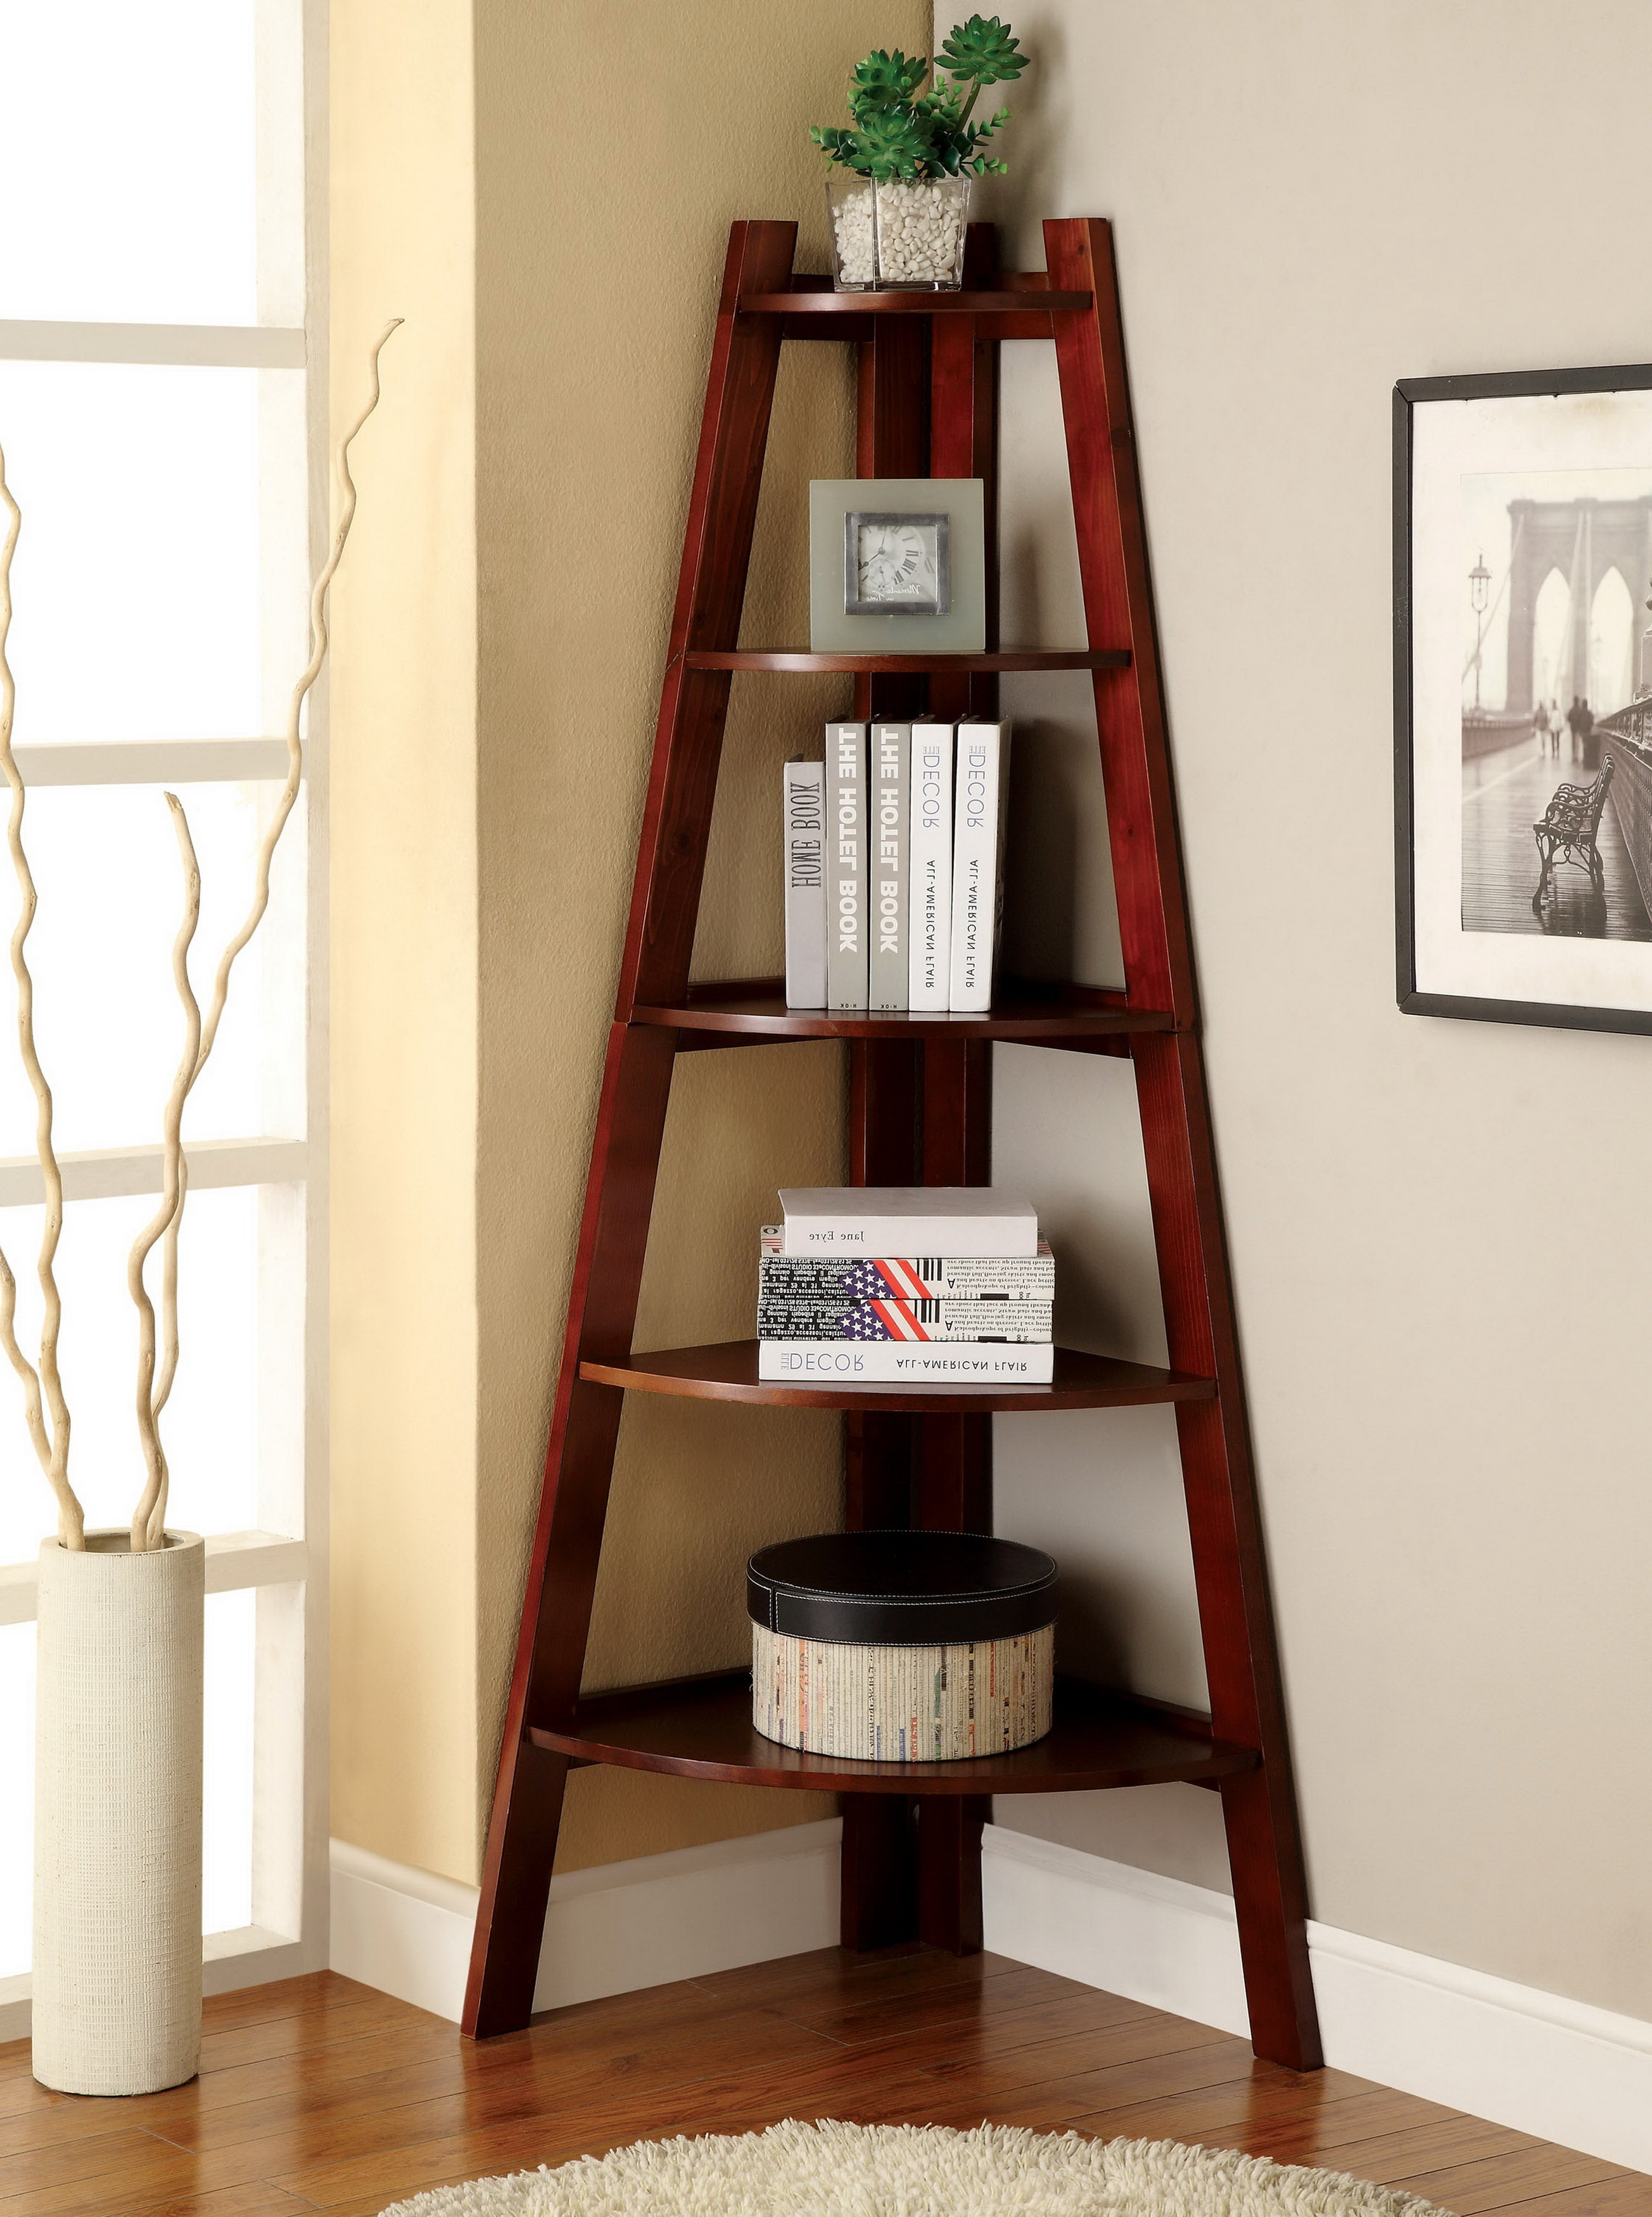 Pierview Corner Bookcase For Well Known Pierview Corner Bookcases (View 3 of 20)